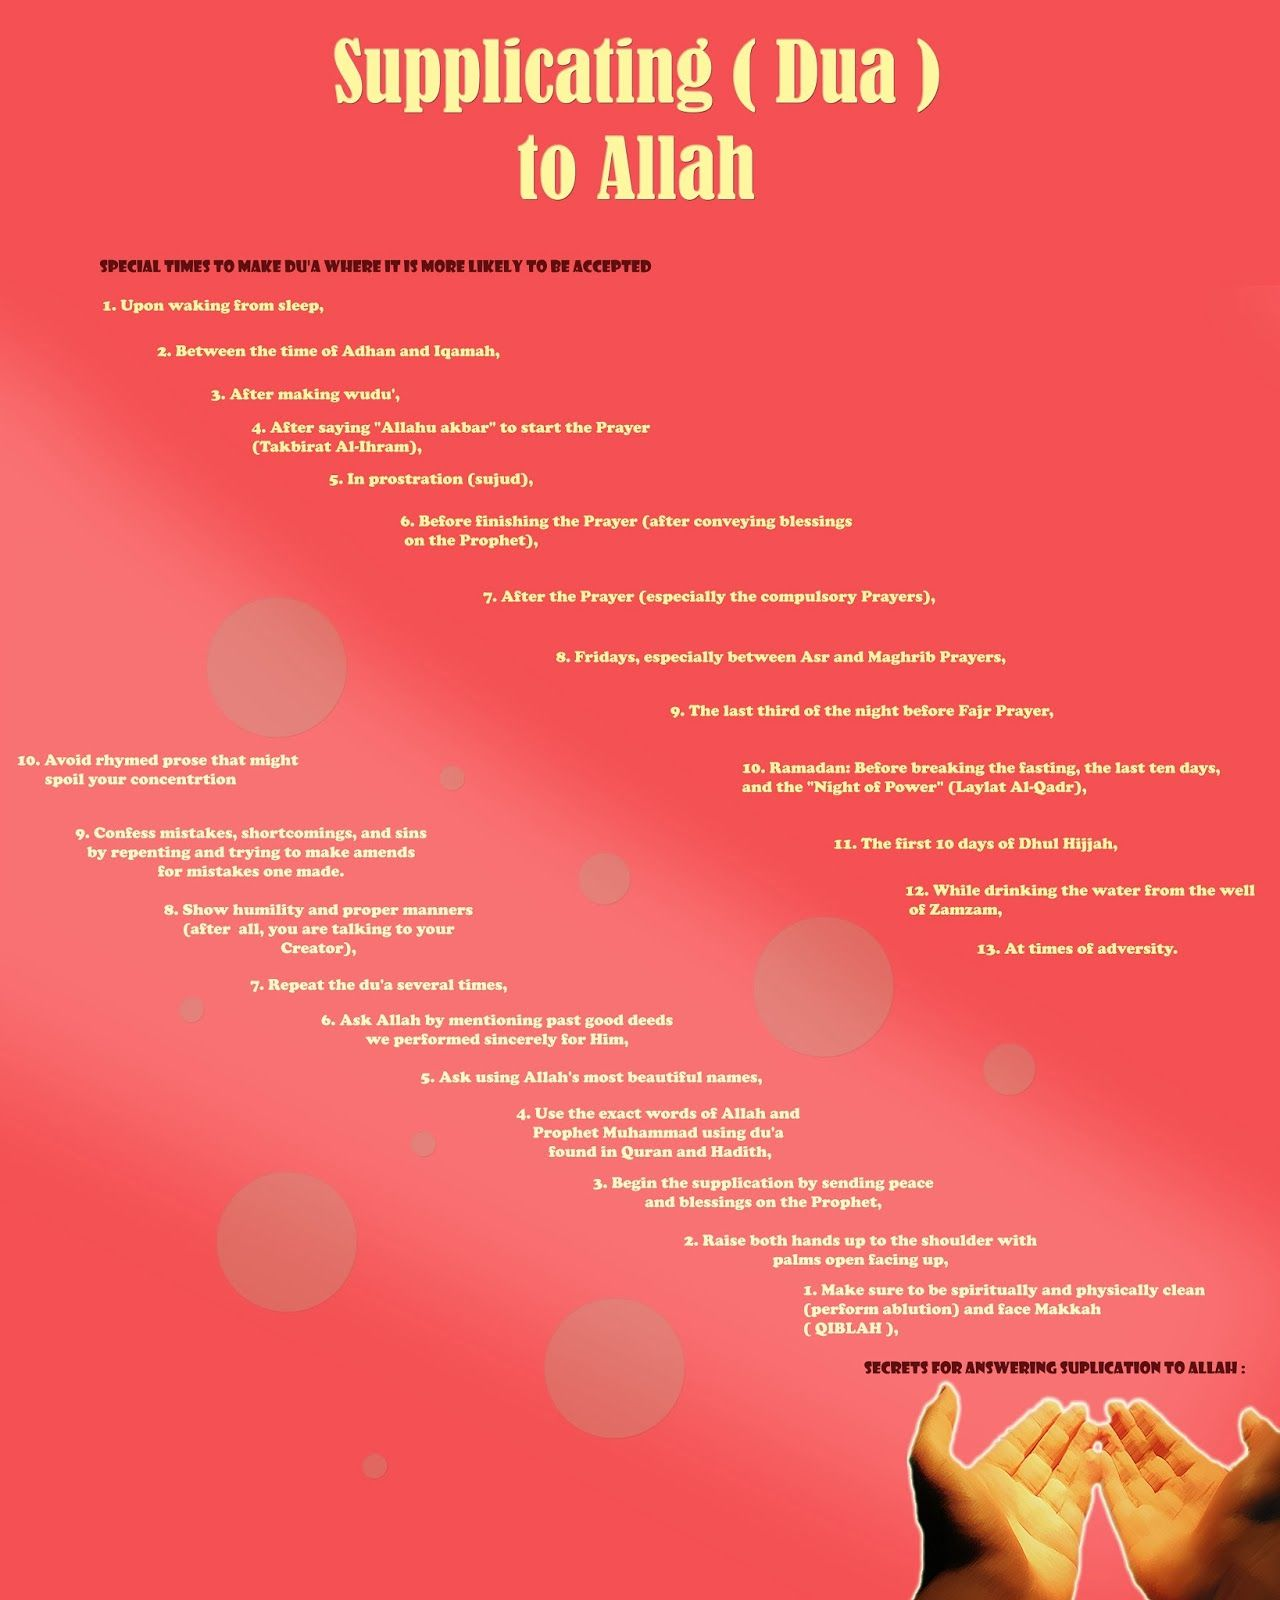 Supplicating to Allah ta'ala - making Dua | For the love of